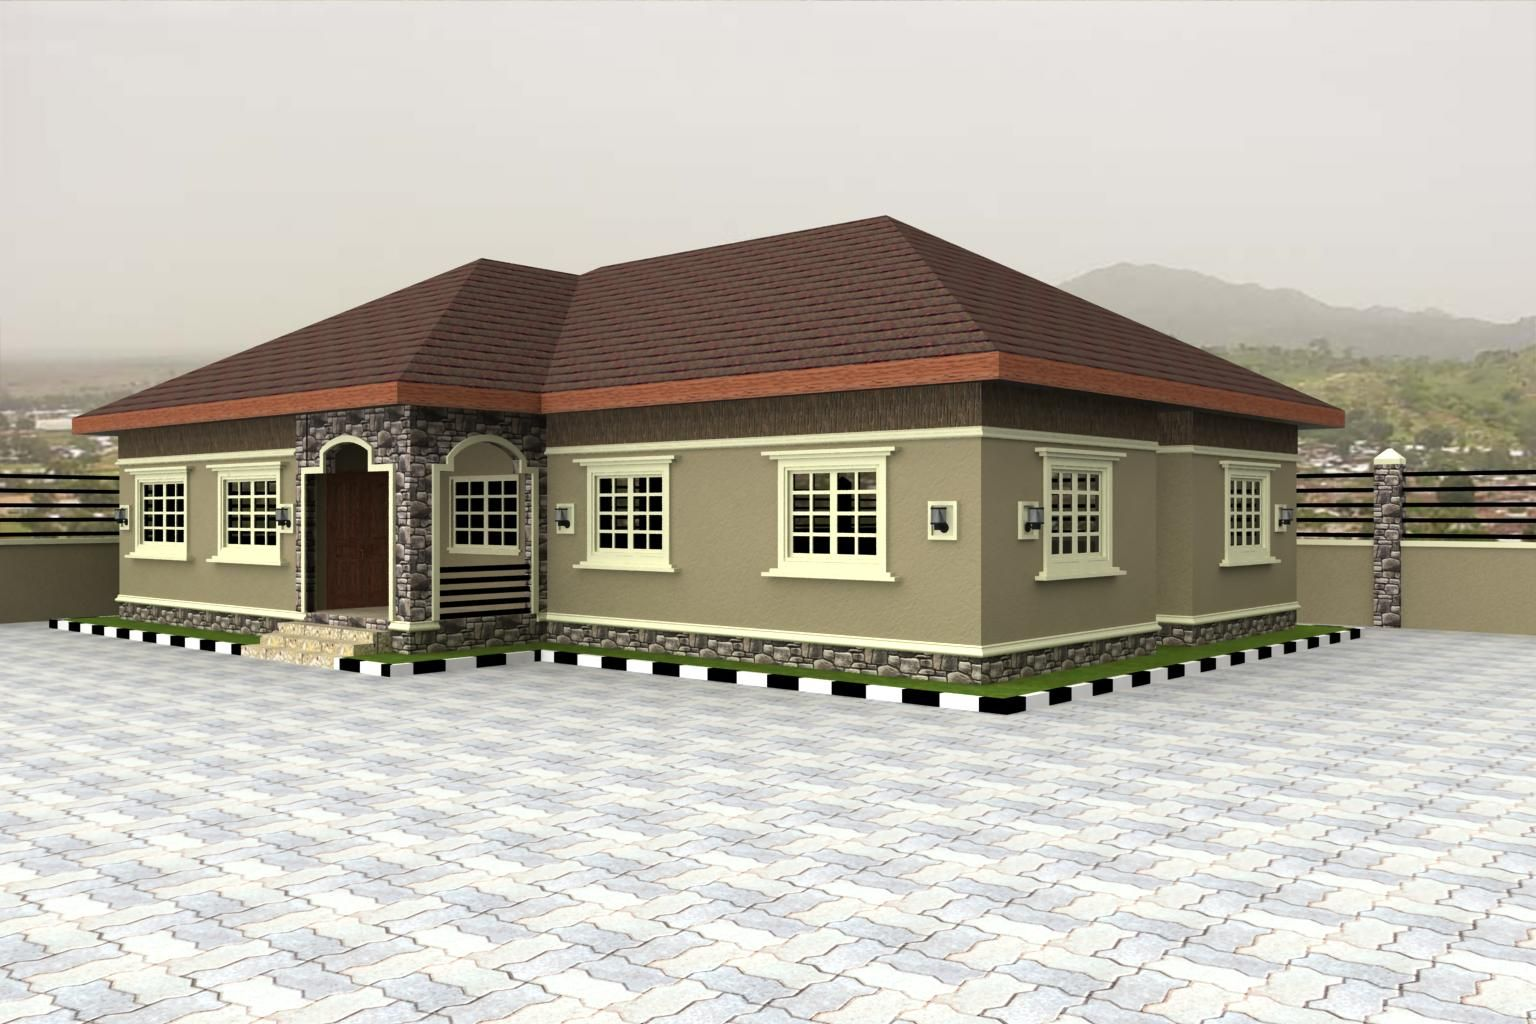 Home plans for bungalows in nigeria properties 4 nairaland for 4 bedroom house designs in nigeria